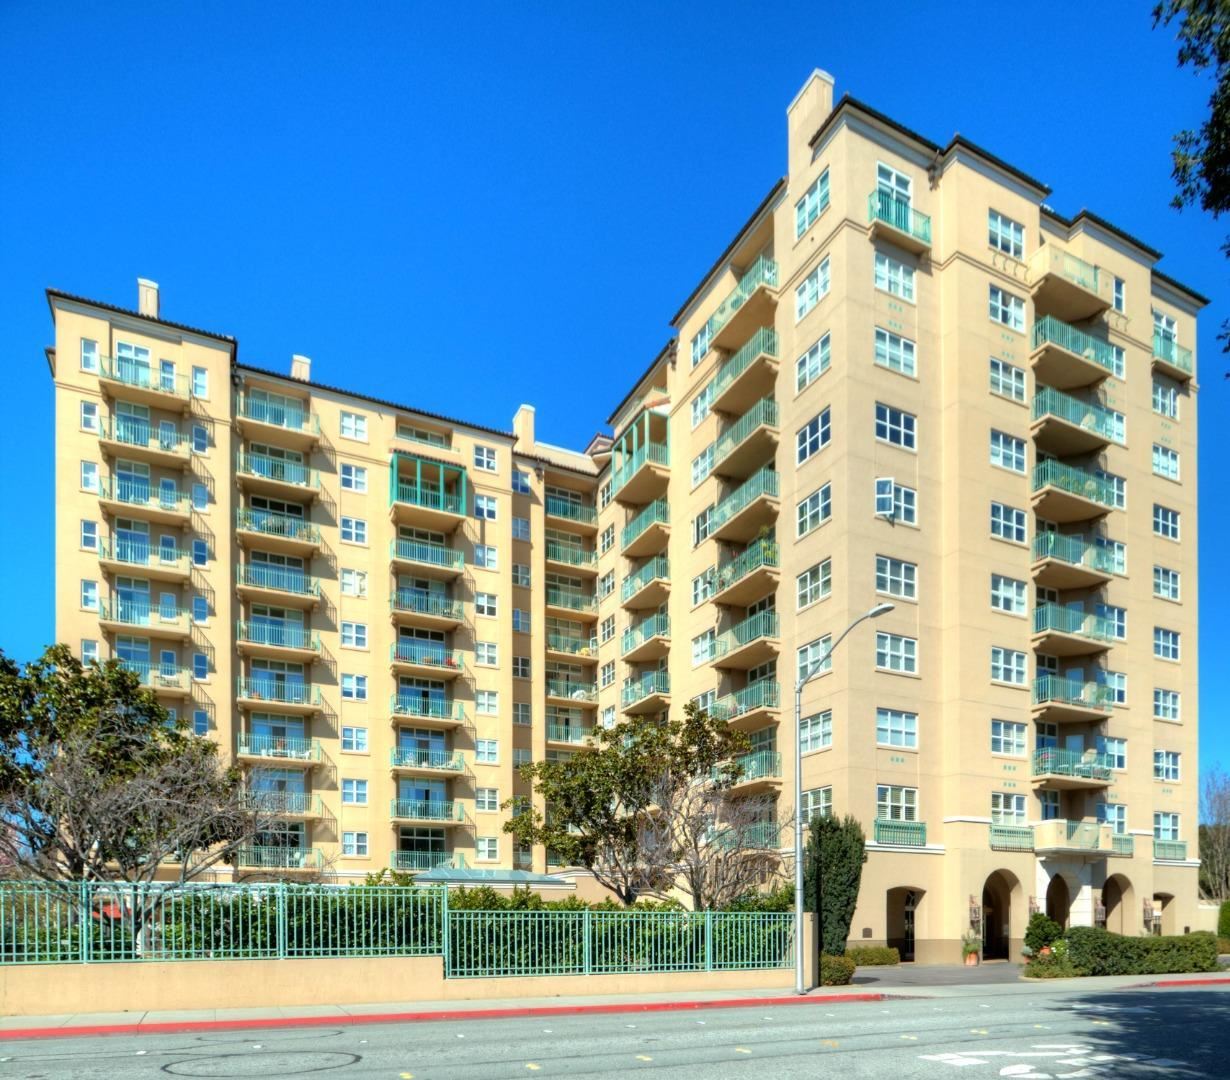 1 Baldwin Avenue #204, San Mateo, CA 94401 - #: ML81831456